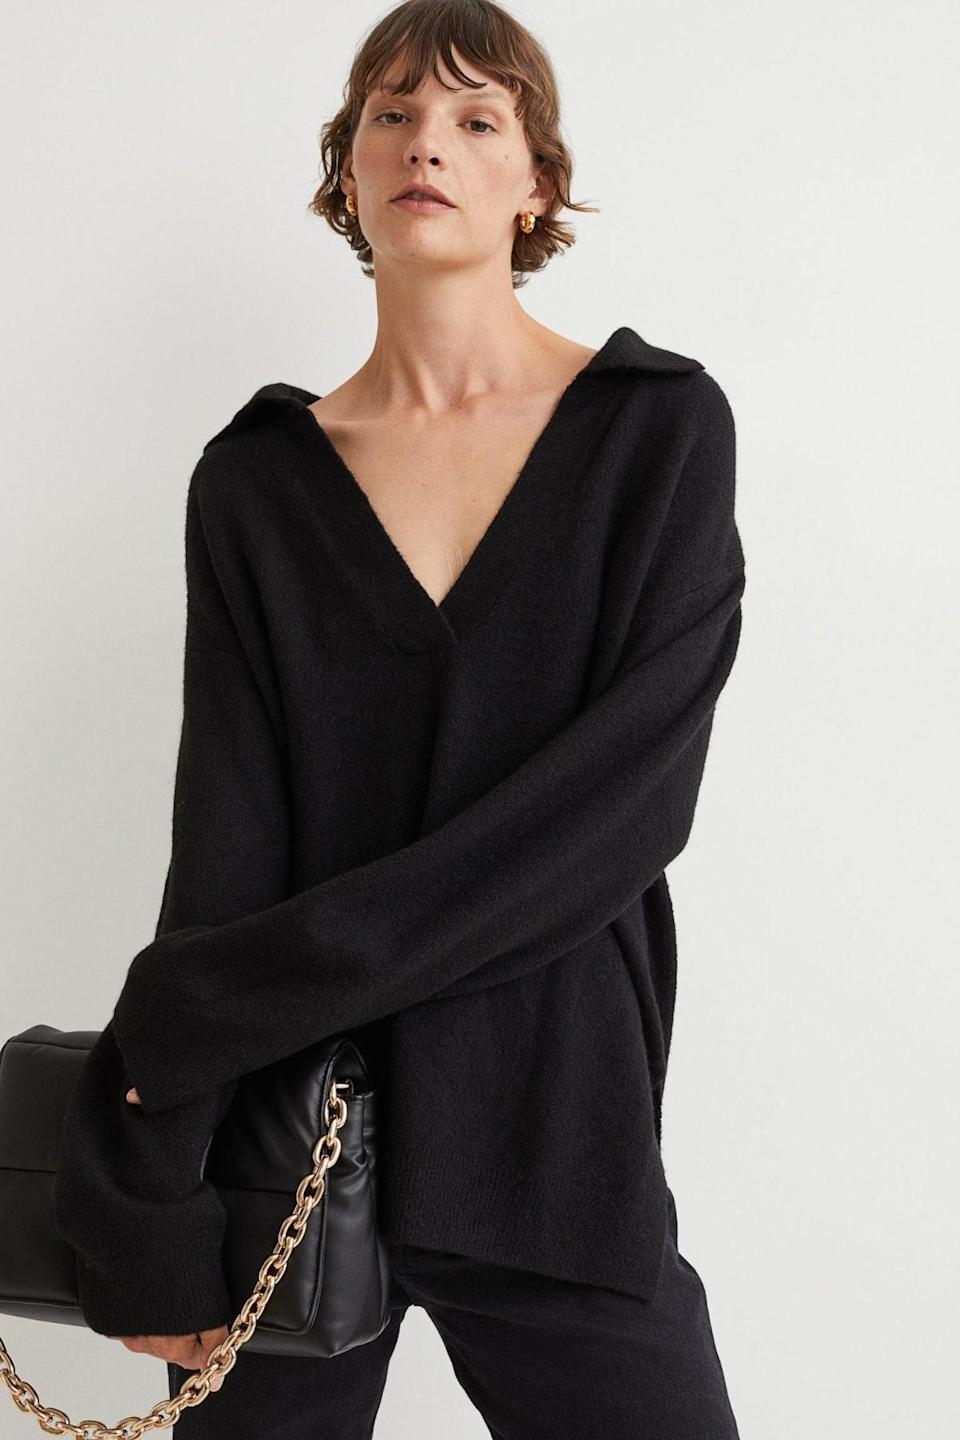 """The intentionally oversized fit on this v-neck sweater will give any outfit you put together a laissez-faire kind of cool. $25, H&M. <a href=""""https://www2.hm.com/en_us/productpage.1009803003.html"""" rel=""""nofollow noopener"""" target=""""_blank"""" data-ylk=""""slk:Get it now!"""" class=""""link rapid-noclick-resp"""">Get it now!</a>"""